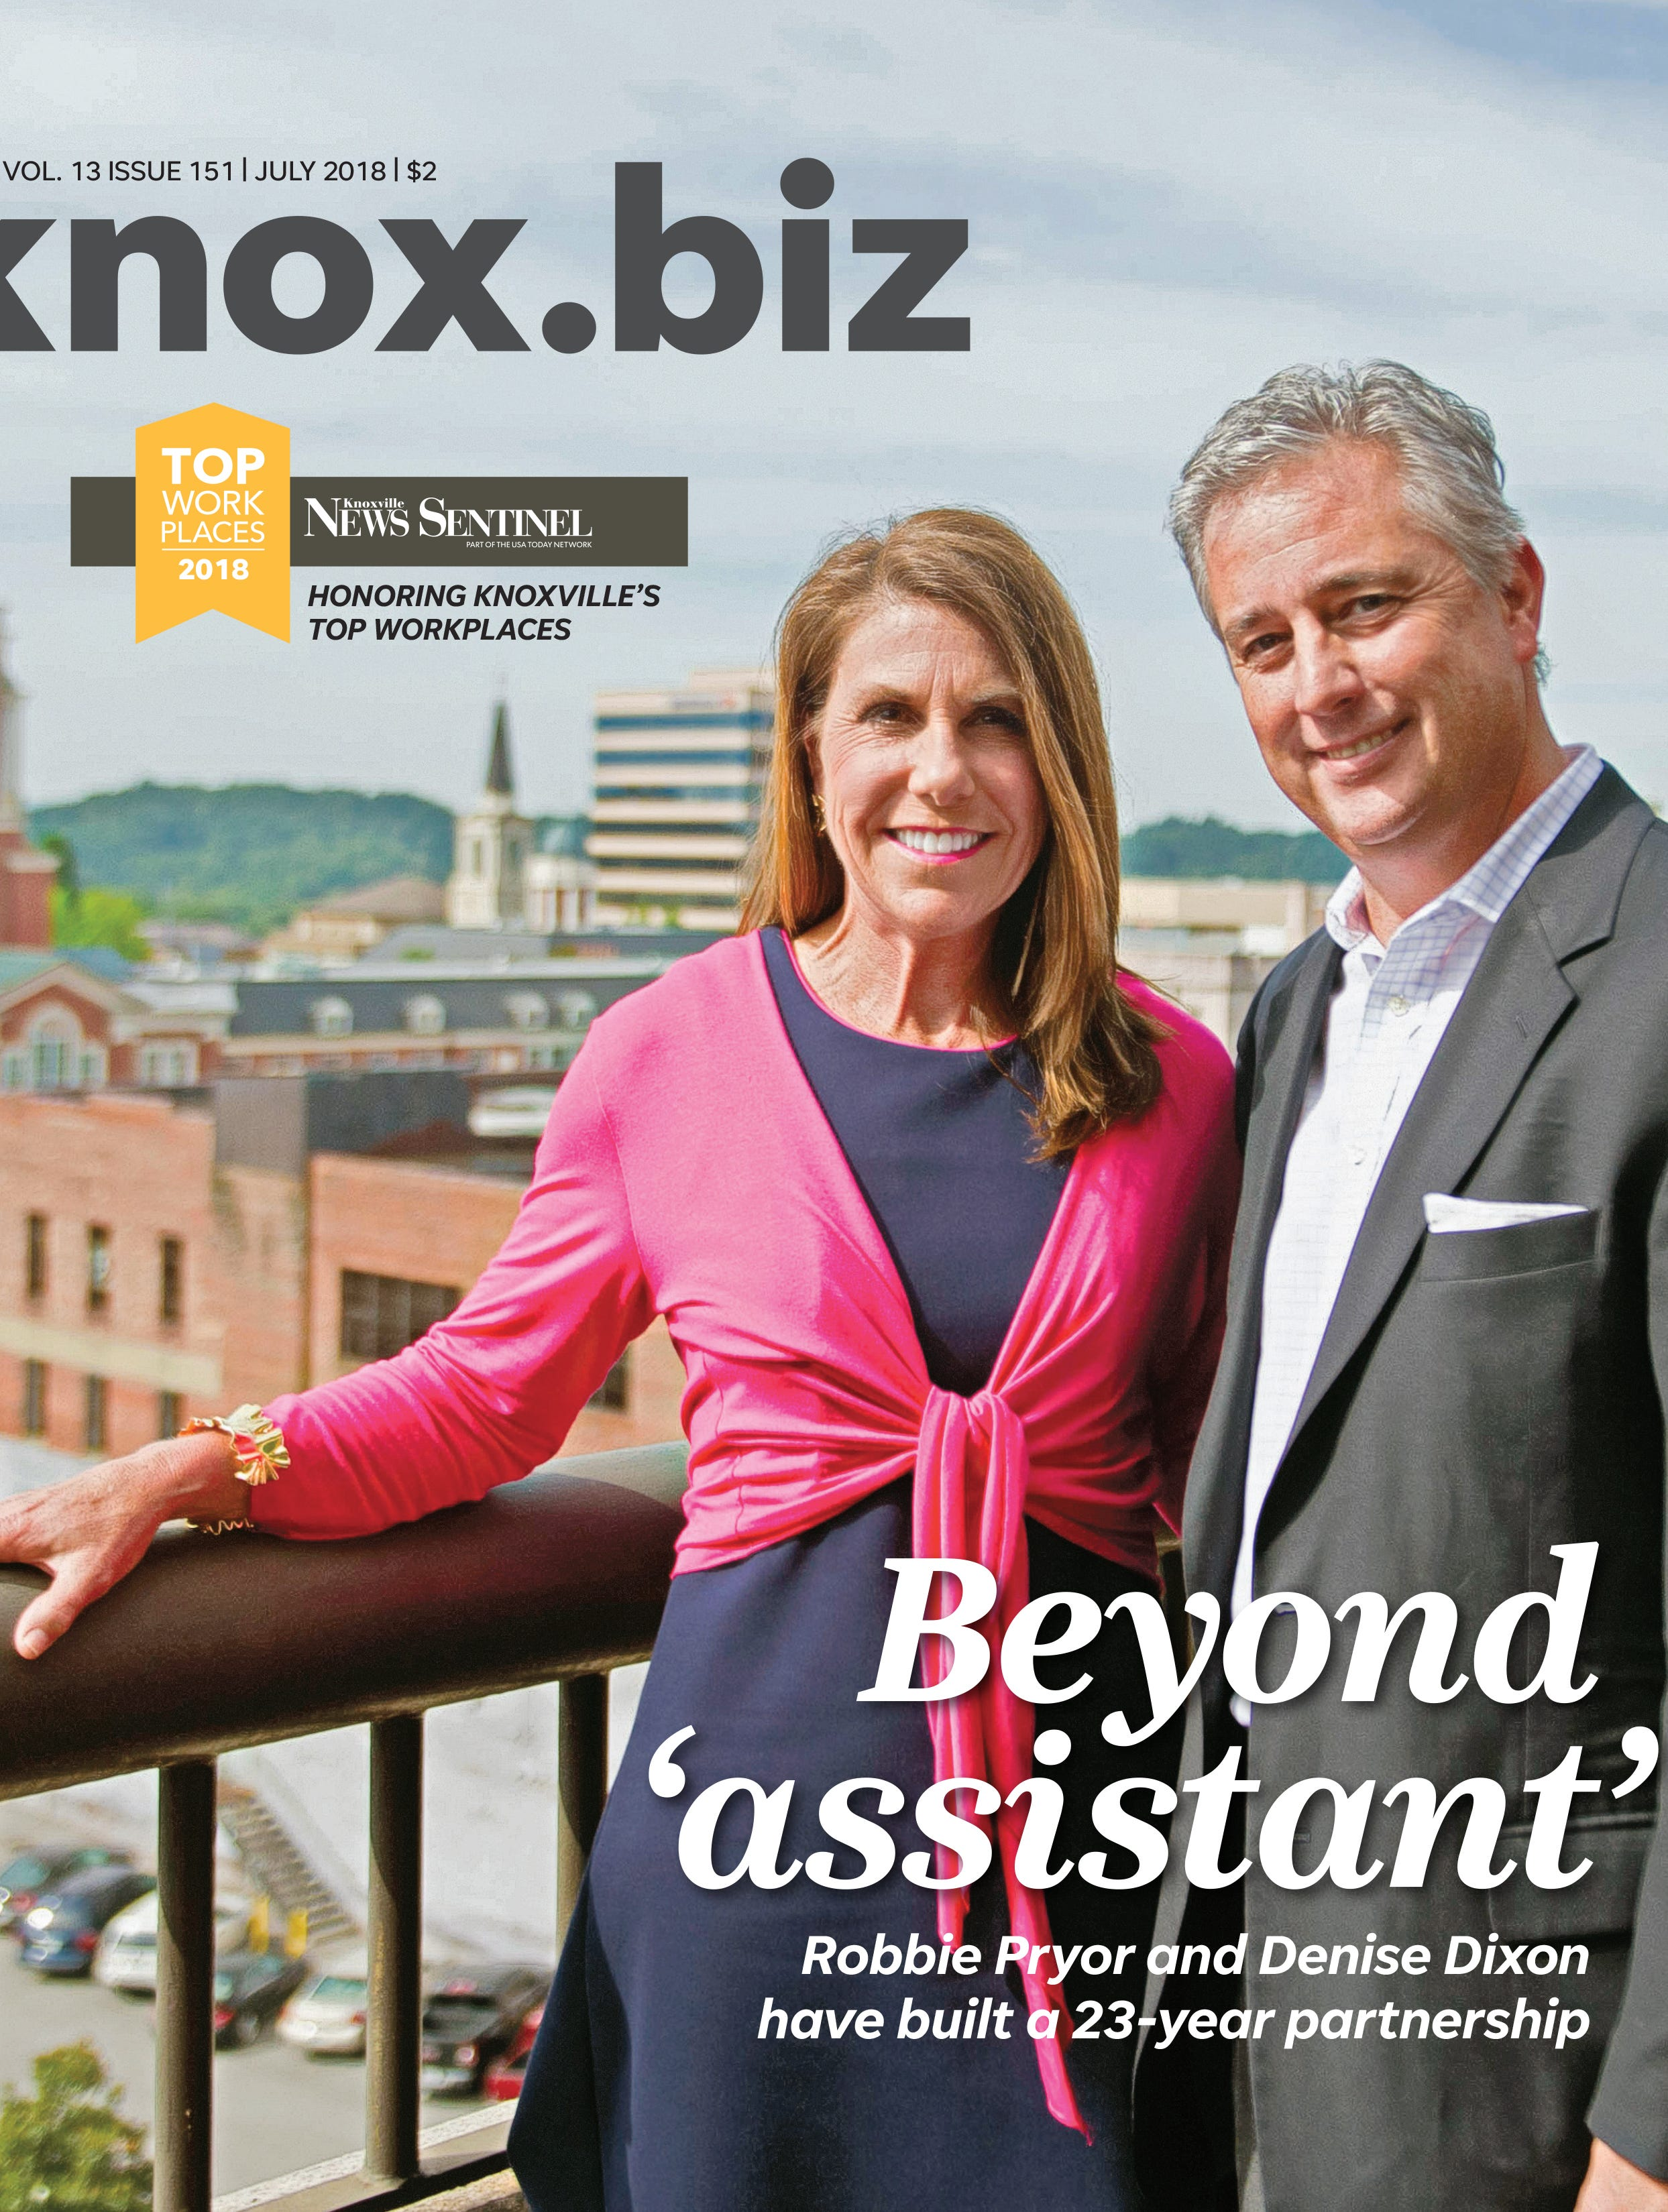 The July 2018 cover of Knox.biz magazine.